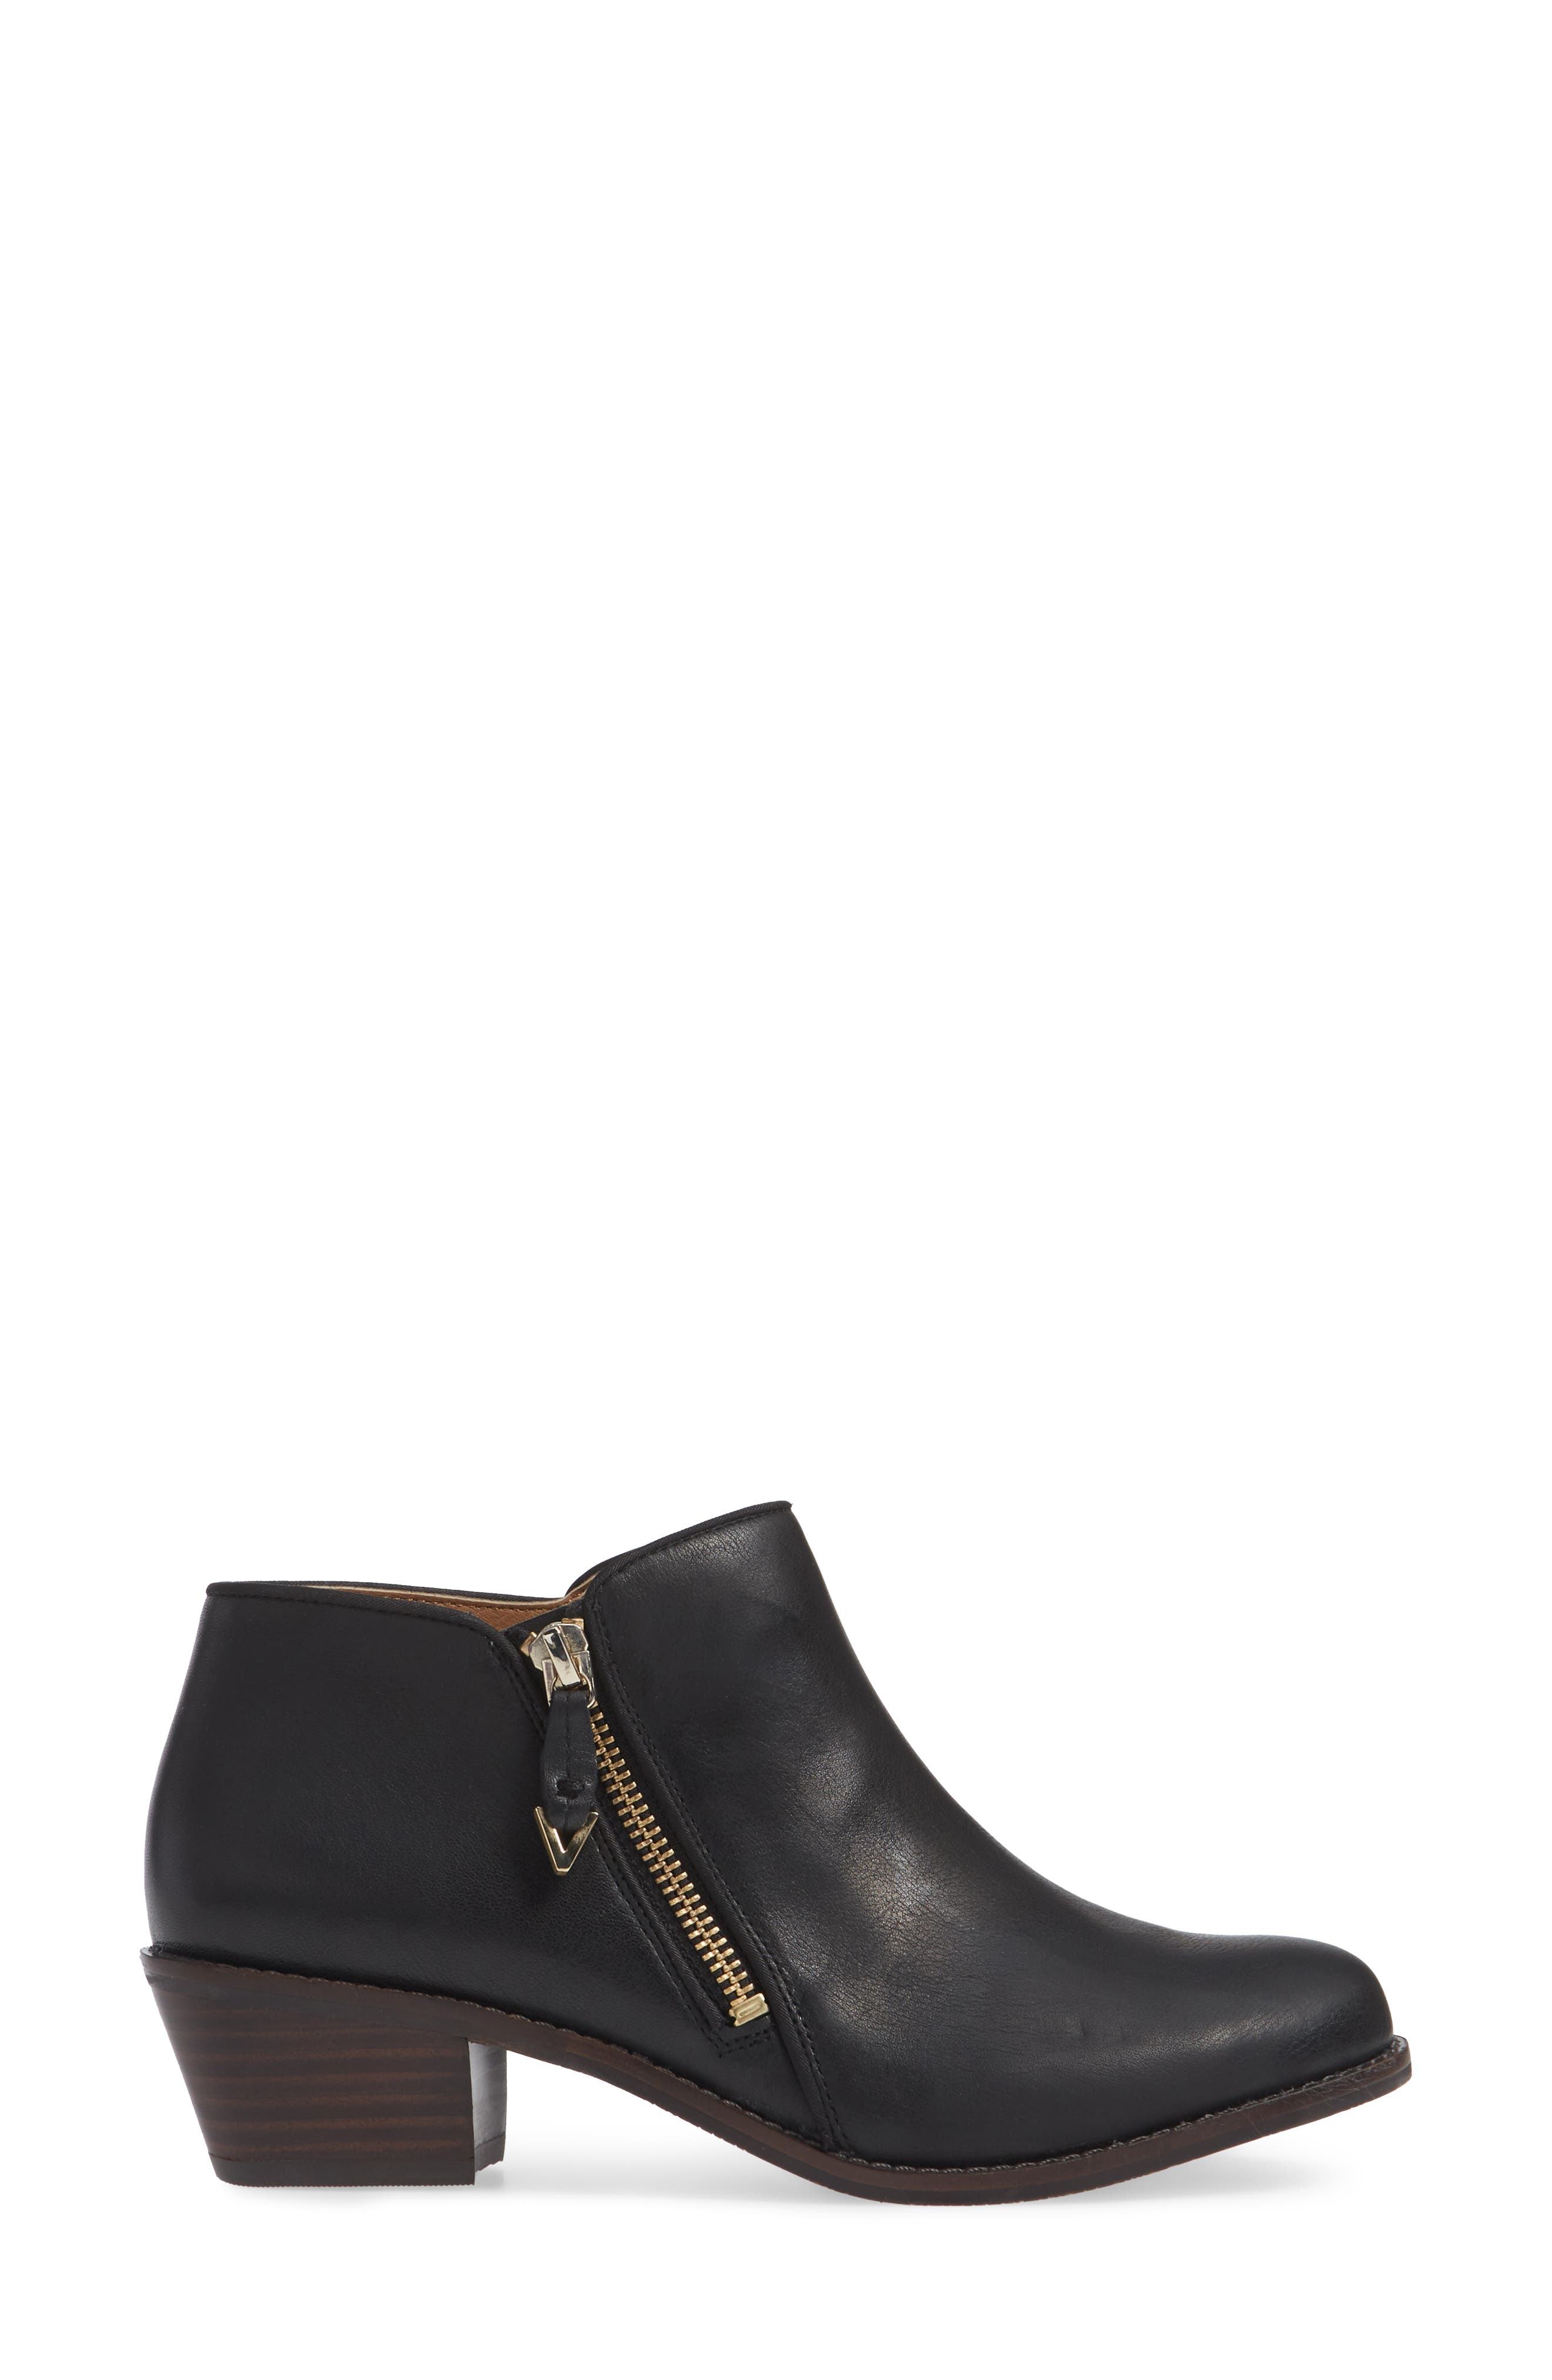 Jolene Bootie,                             Alternate thumbnail 3, color,                             BLACK LEATHER